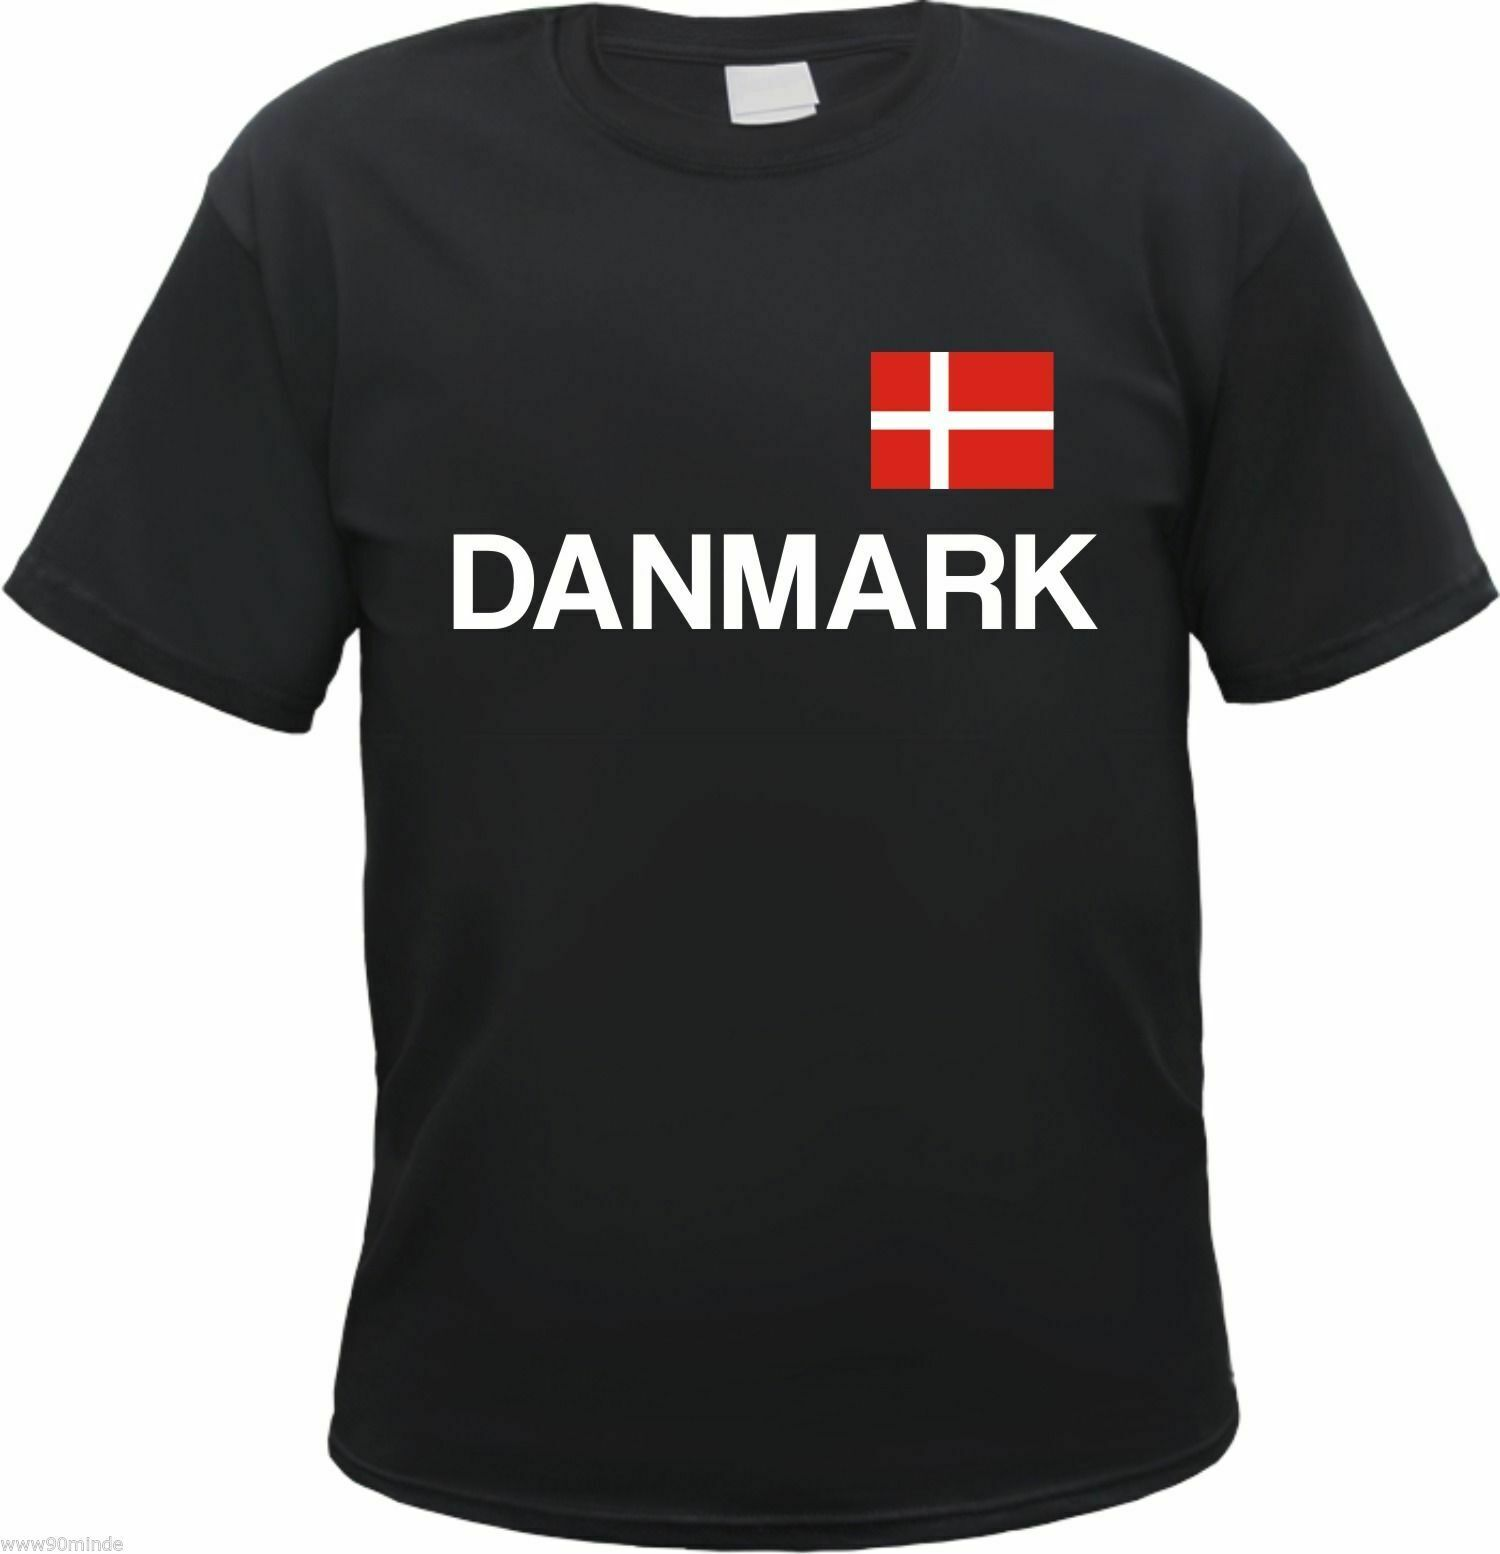 Danmark T-Shirt-Flag And Text Print-S To 3xl-Black-Denmark Holiday- Show Original Title